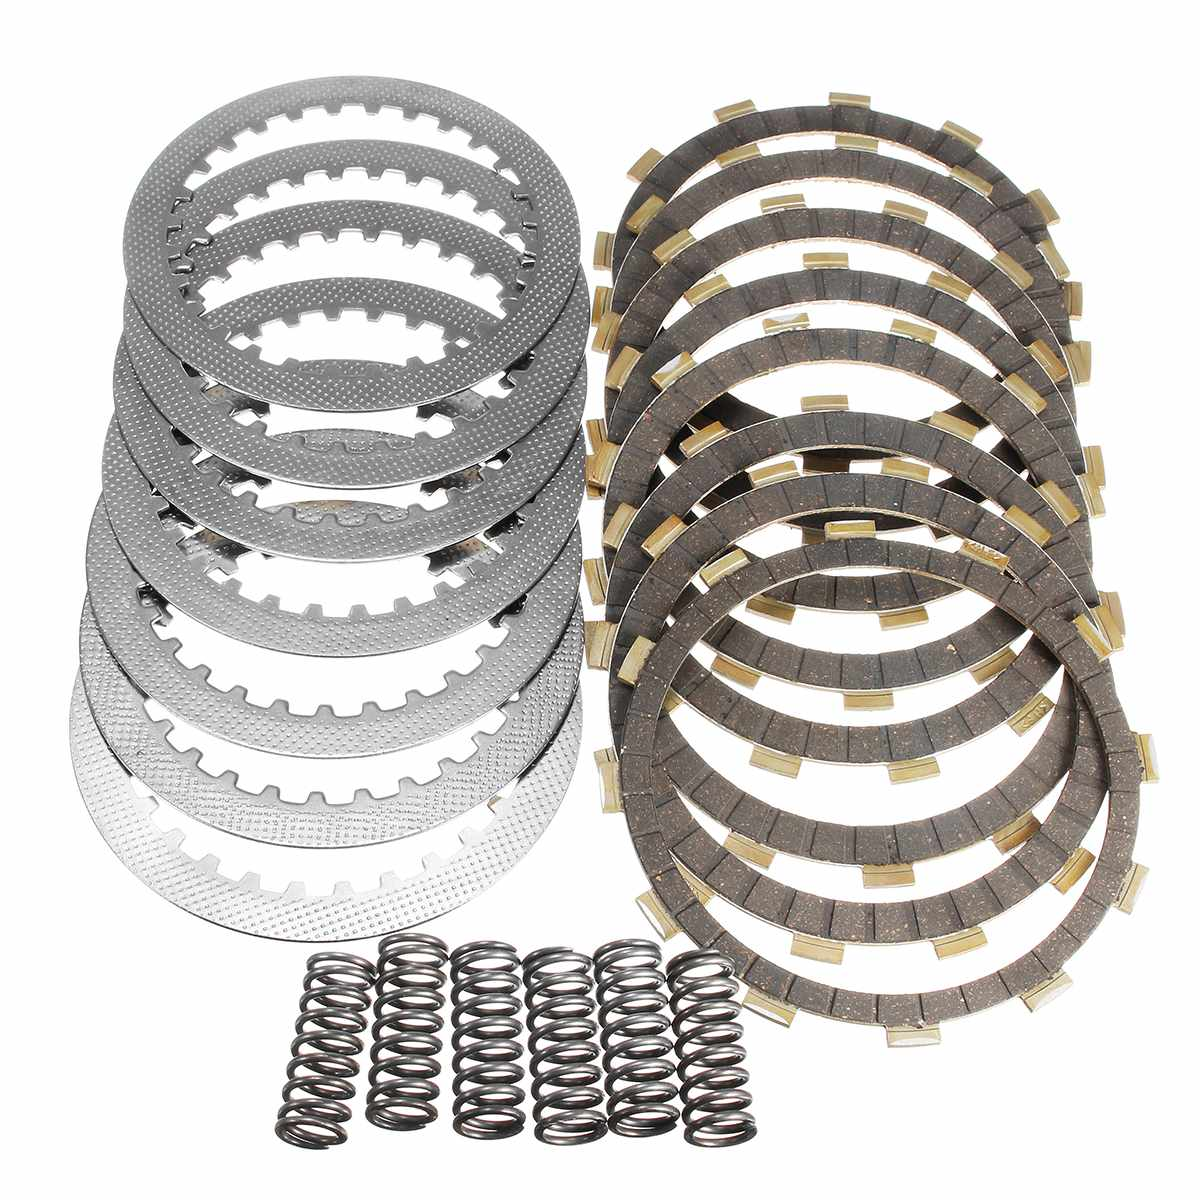 Clutch Kit With Heavy Duty Springs Plates For Honda For TRX 450 R TRX450 2004-2009 Metal Motorcycle Friction Plates Spring